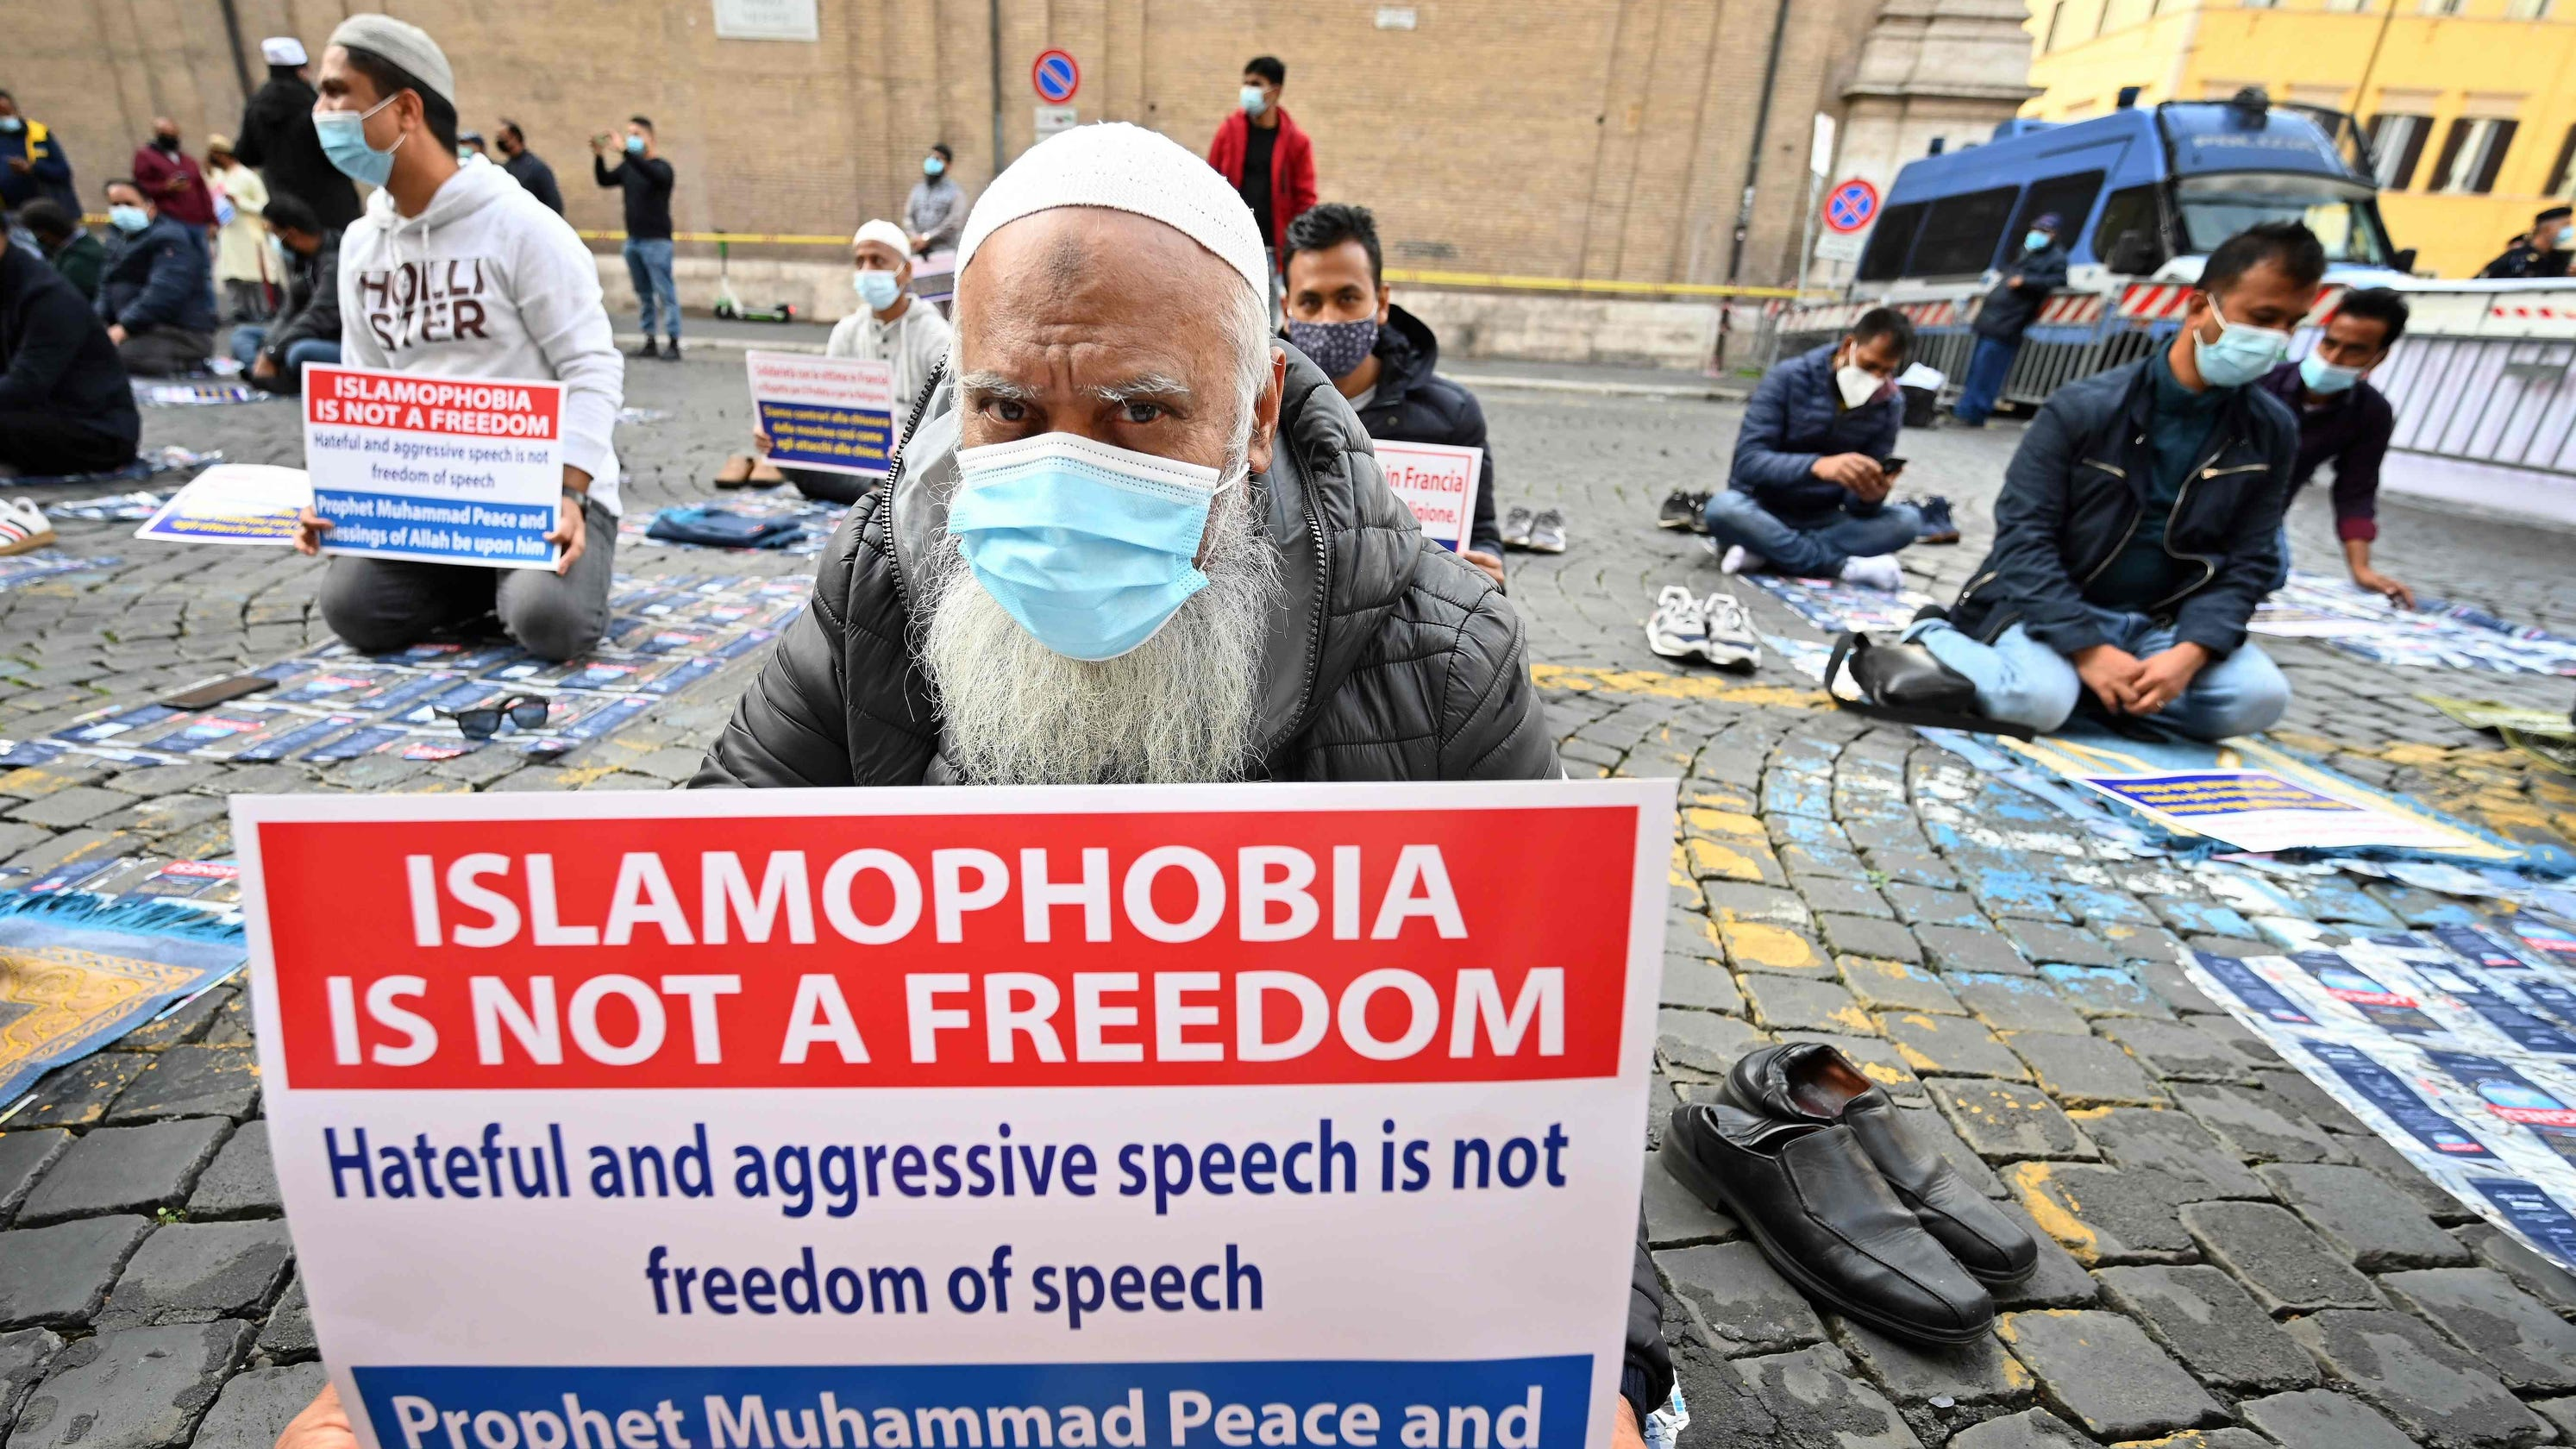 Terror attacks in France over Mohammad cartoons spark debate on secularism Islamophobia – USA TODAY